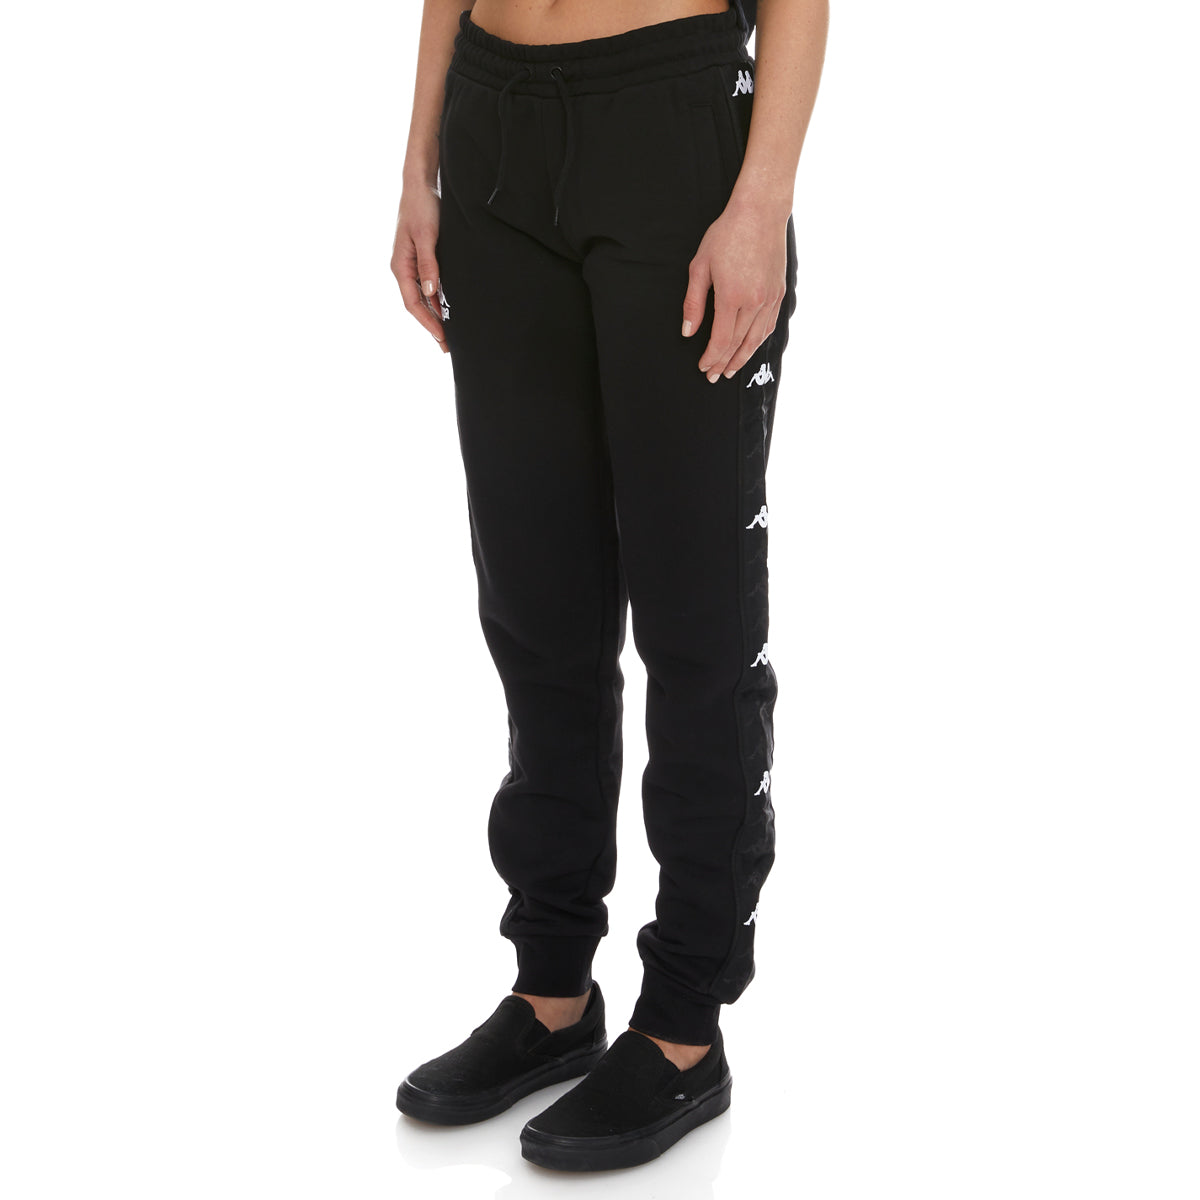 Kappa 222 Banda Brily Sweatpants - Black White